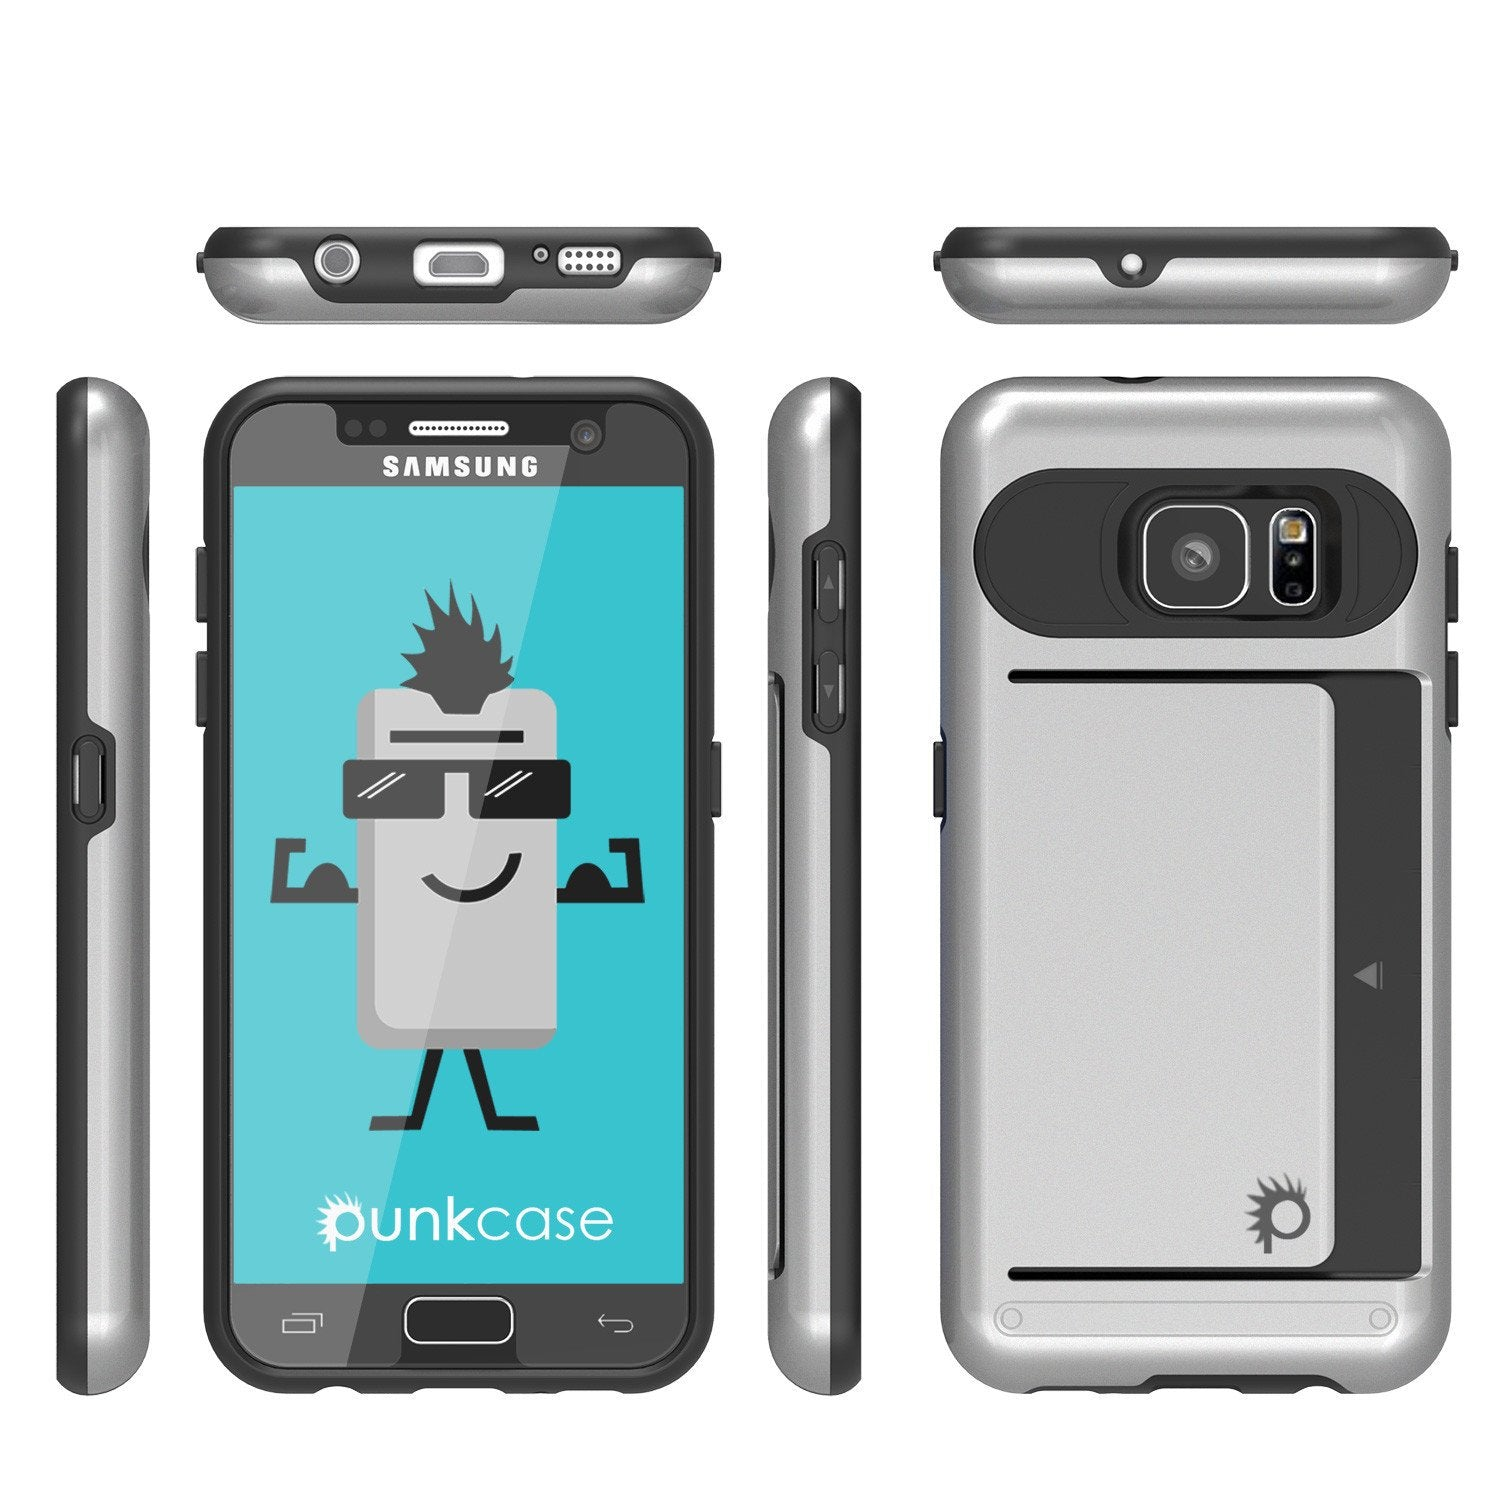 Galaxy S7 EDGE Case PunkCase CLUTCH Silver Series Slim Armor Soft Cover Case w/ Screen Protector - PunkCase NZ